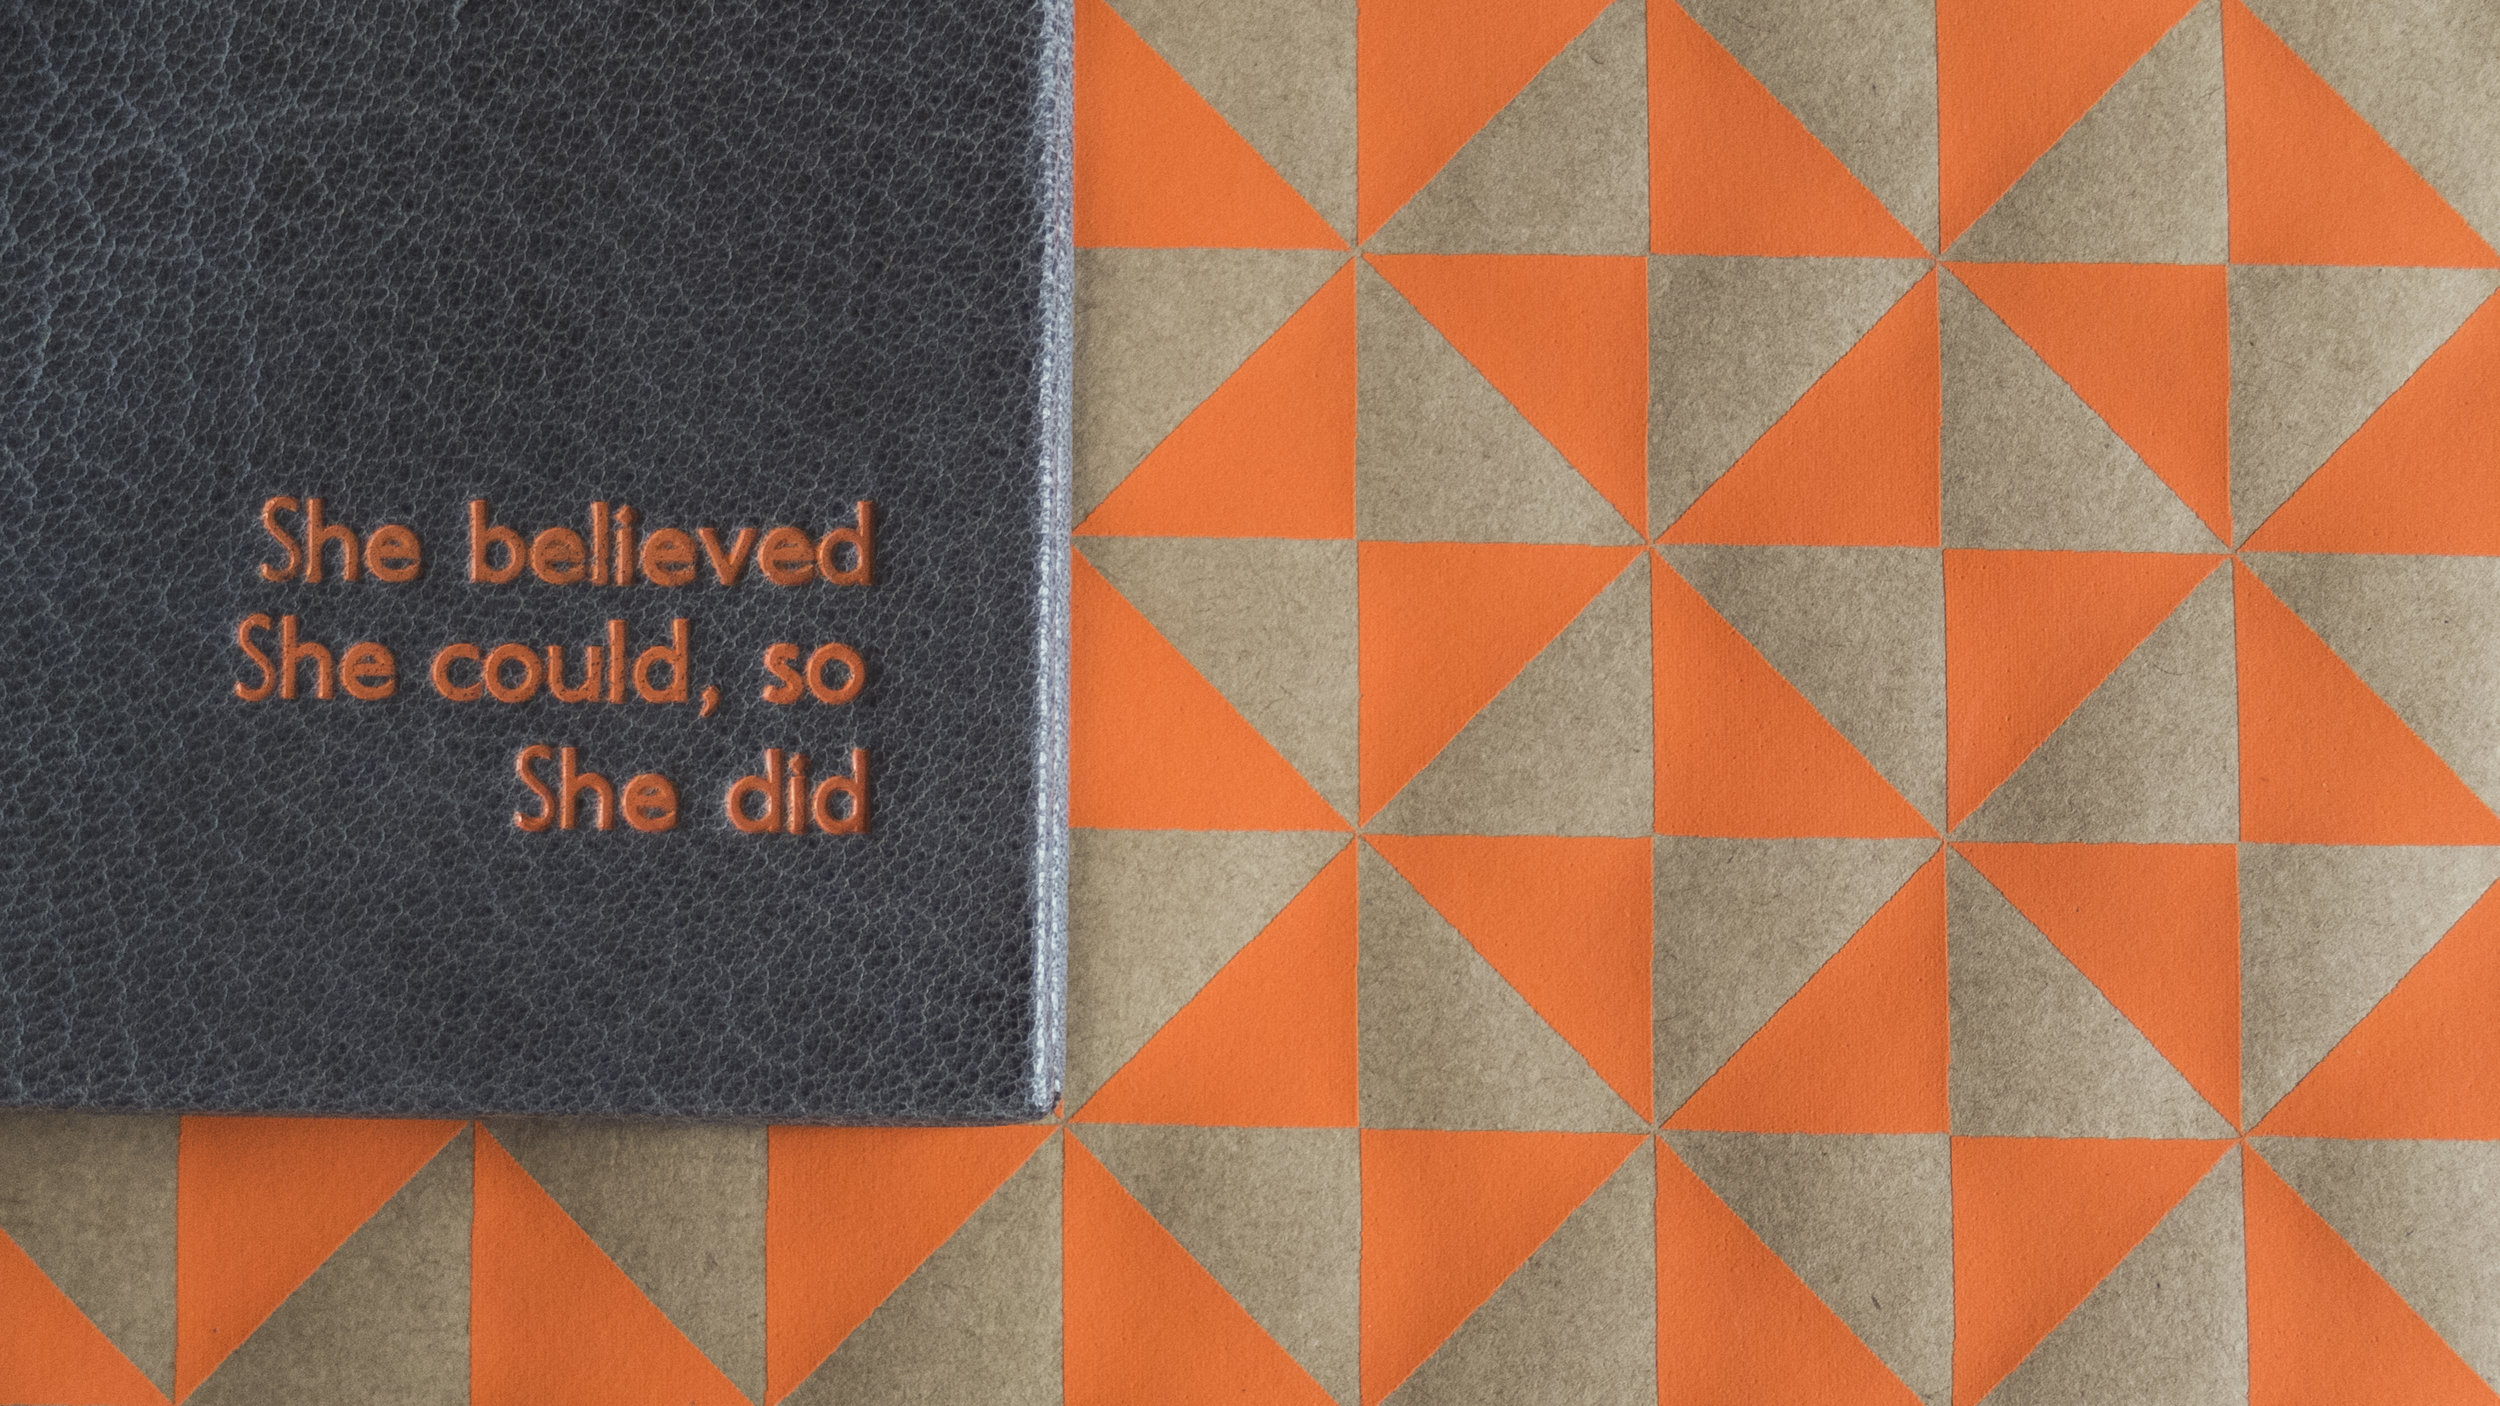 She believed She could, so She did. - This is probably my favourite notebook i have made recently, i love grey and orange together and i was so happy that i managed to match the orange of the endpapers with the orange for the tooling. The saying 'she believed she could so she did' comes from a book by R.S Grey called 'scoring wilder' it's a teen romance novel about a girl trying to get the guy, i was surprised it was from this, expecting loftier feminist literature.